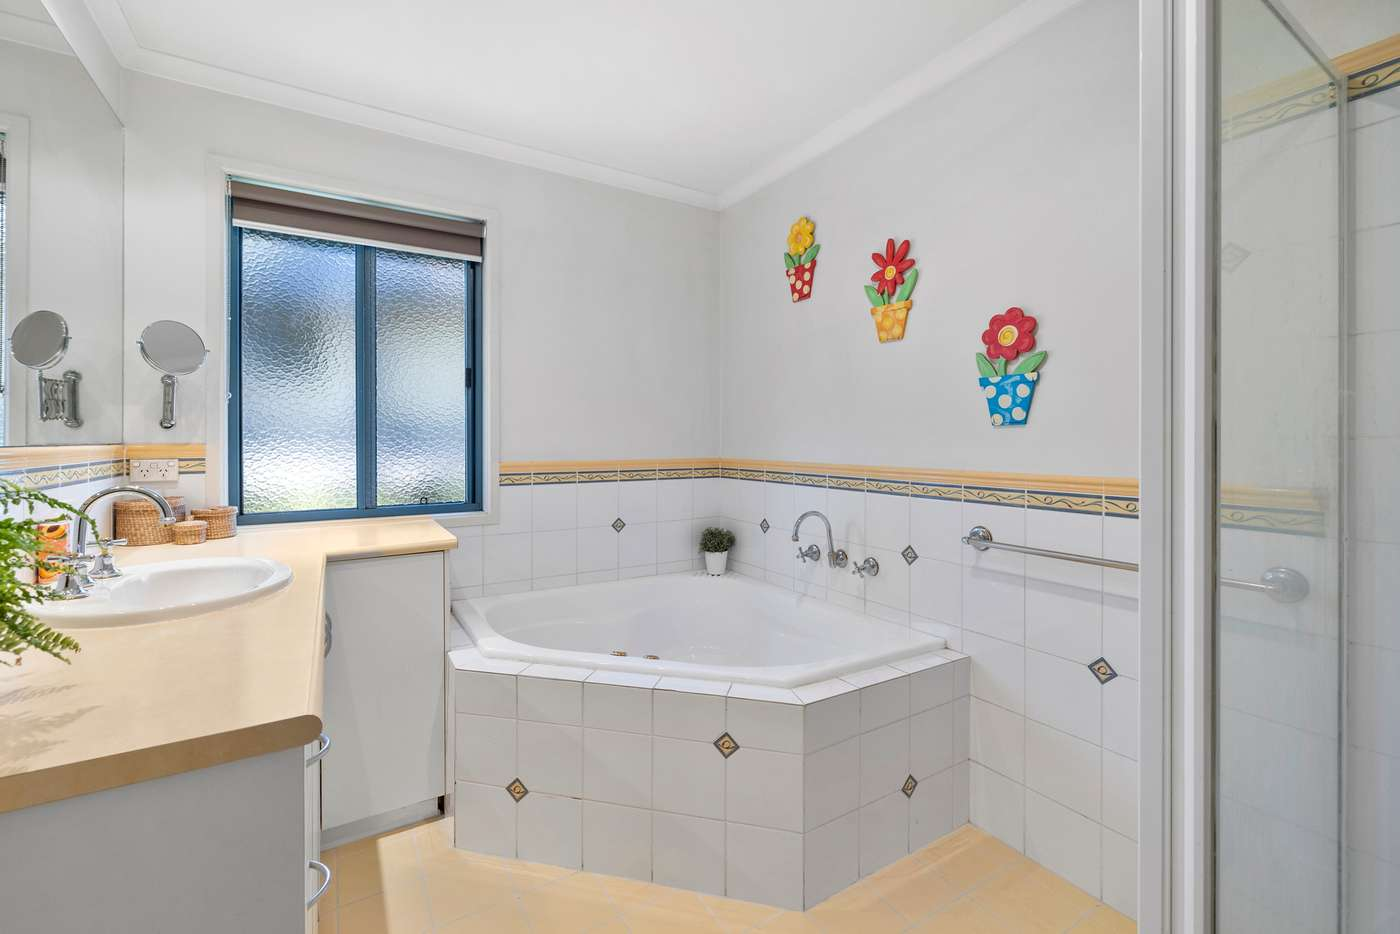 Sixth view of Homely house listing, 2/12 Lascelles Terrace, Lorne VIC 3232